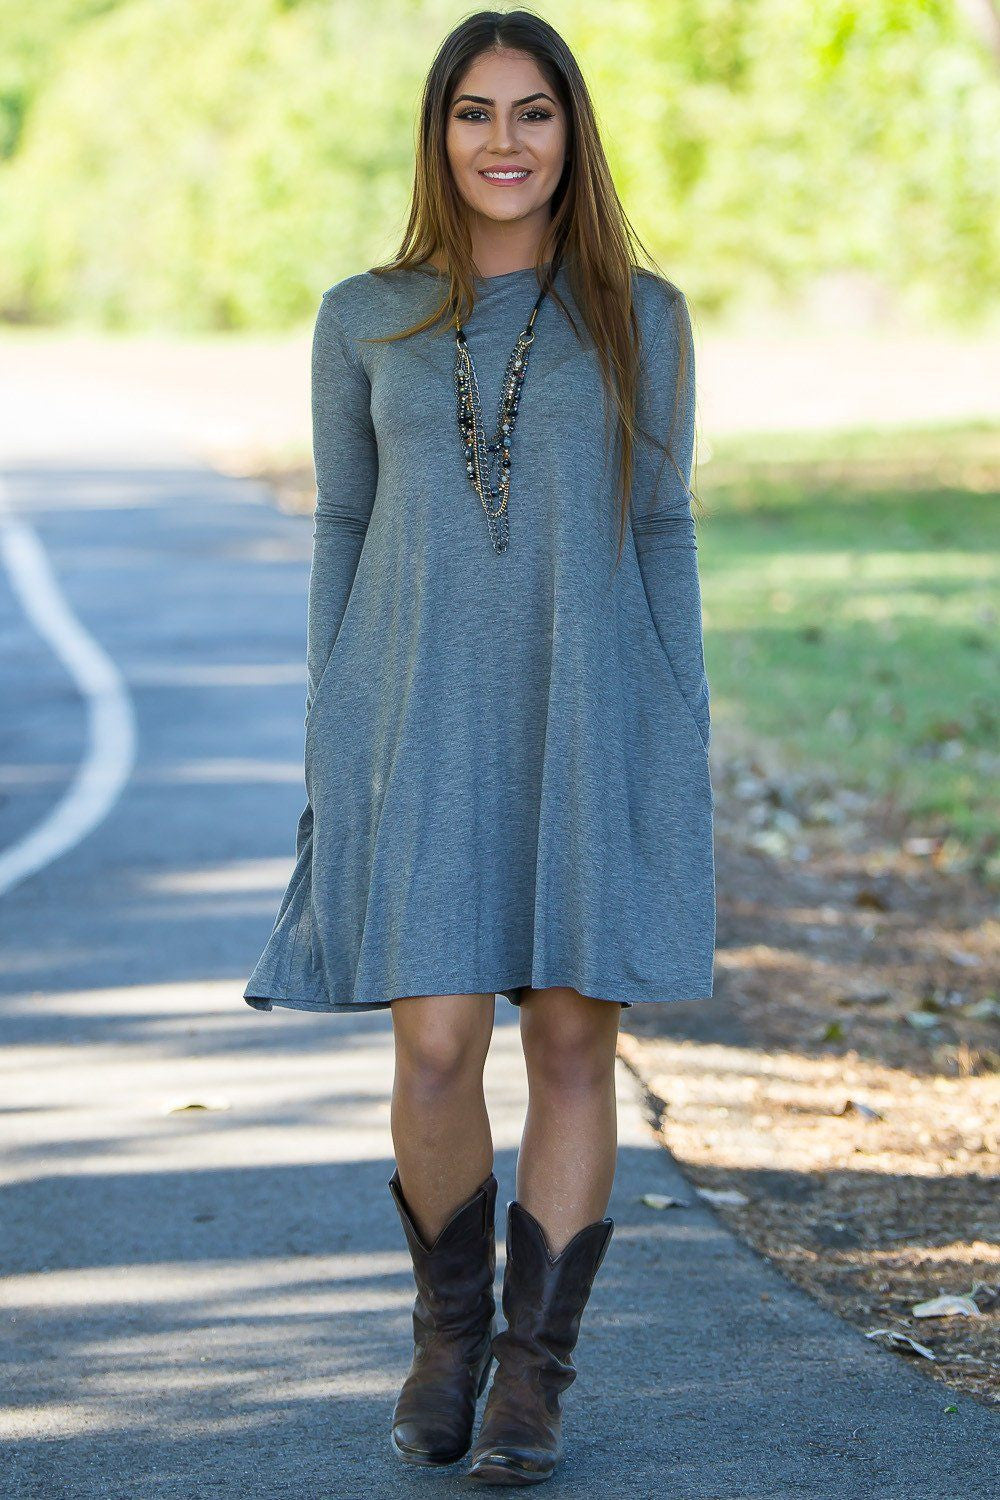 Piko Long Sleeve Swing Dress - Heather Grey - Piko Clothing - 1